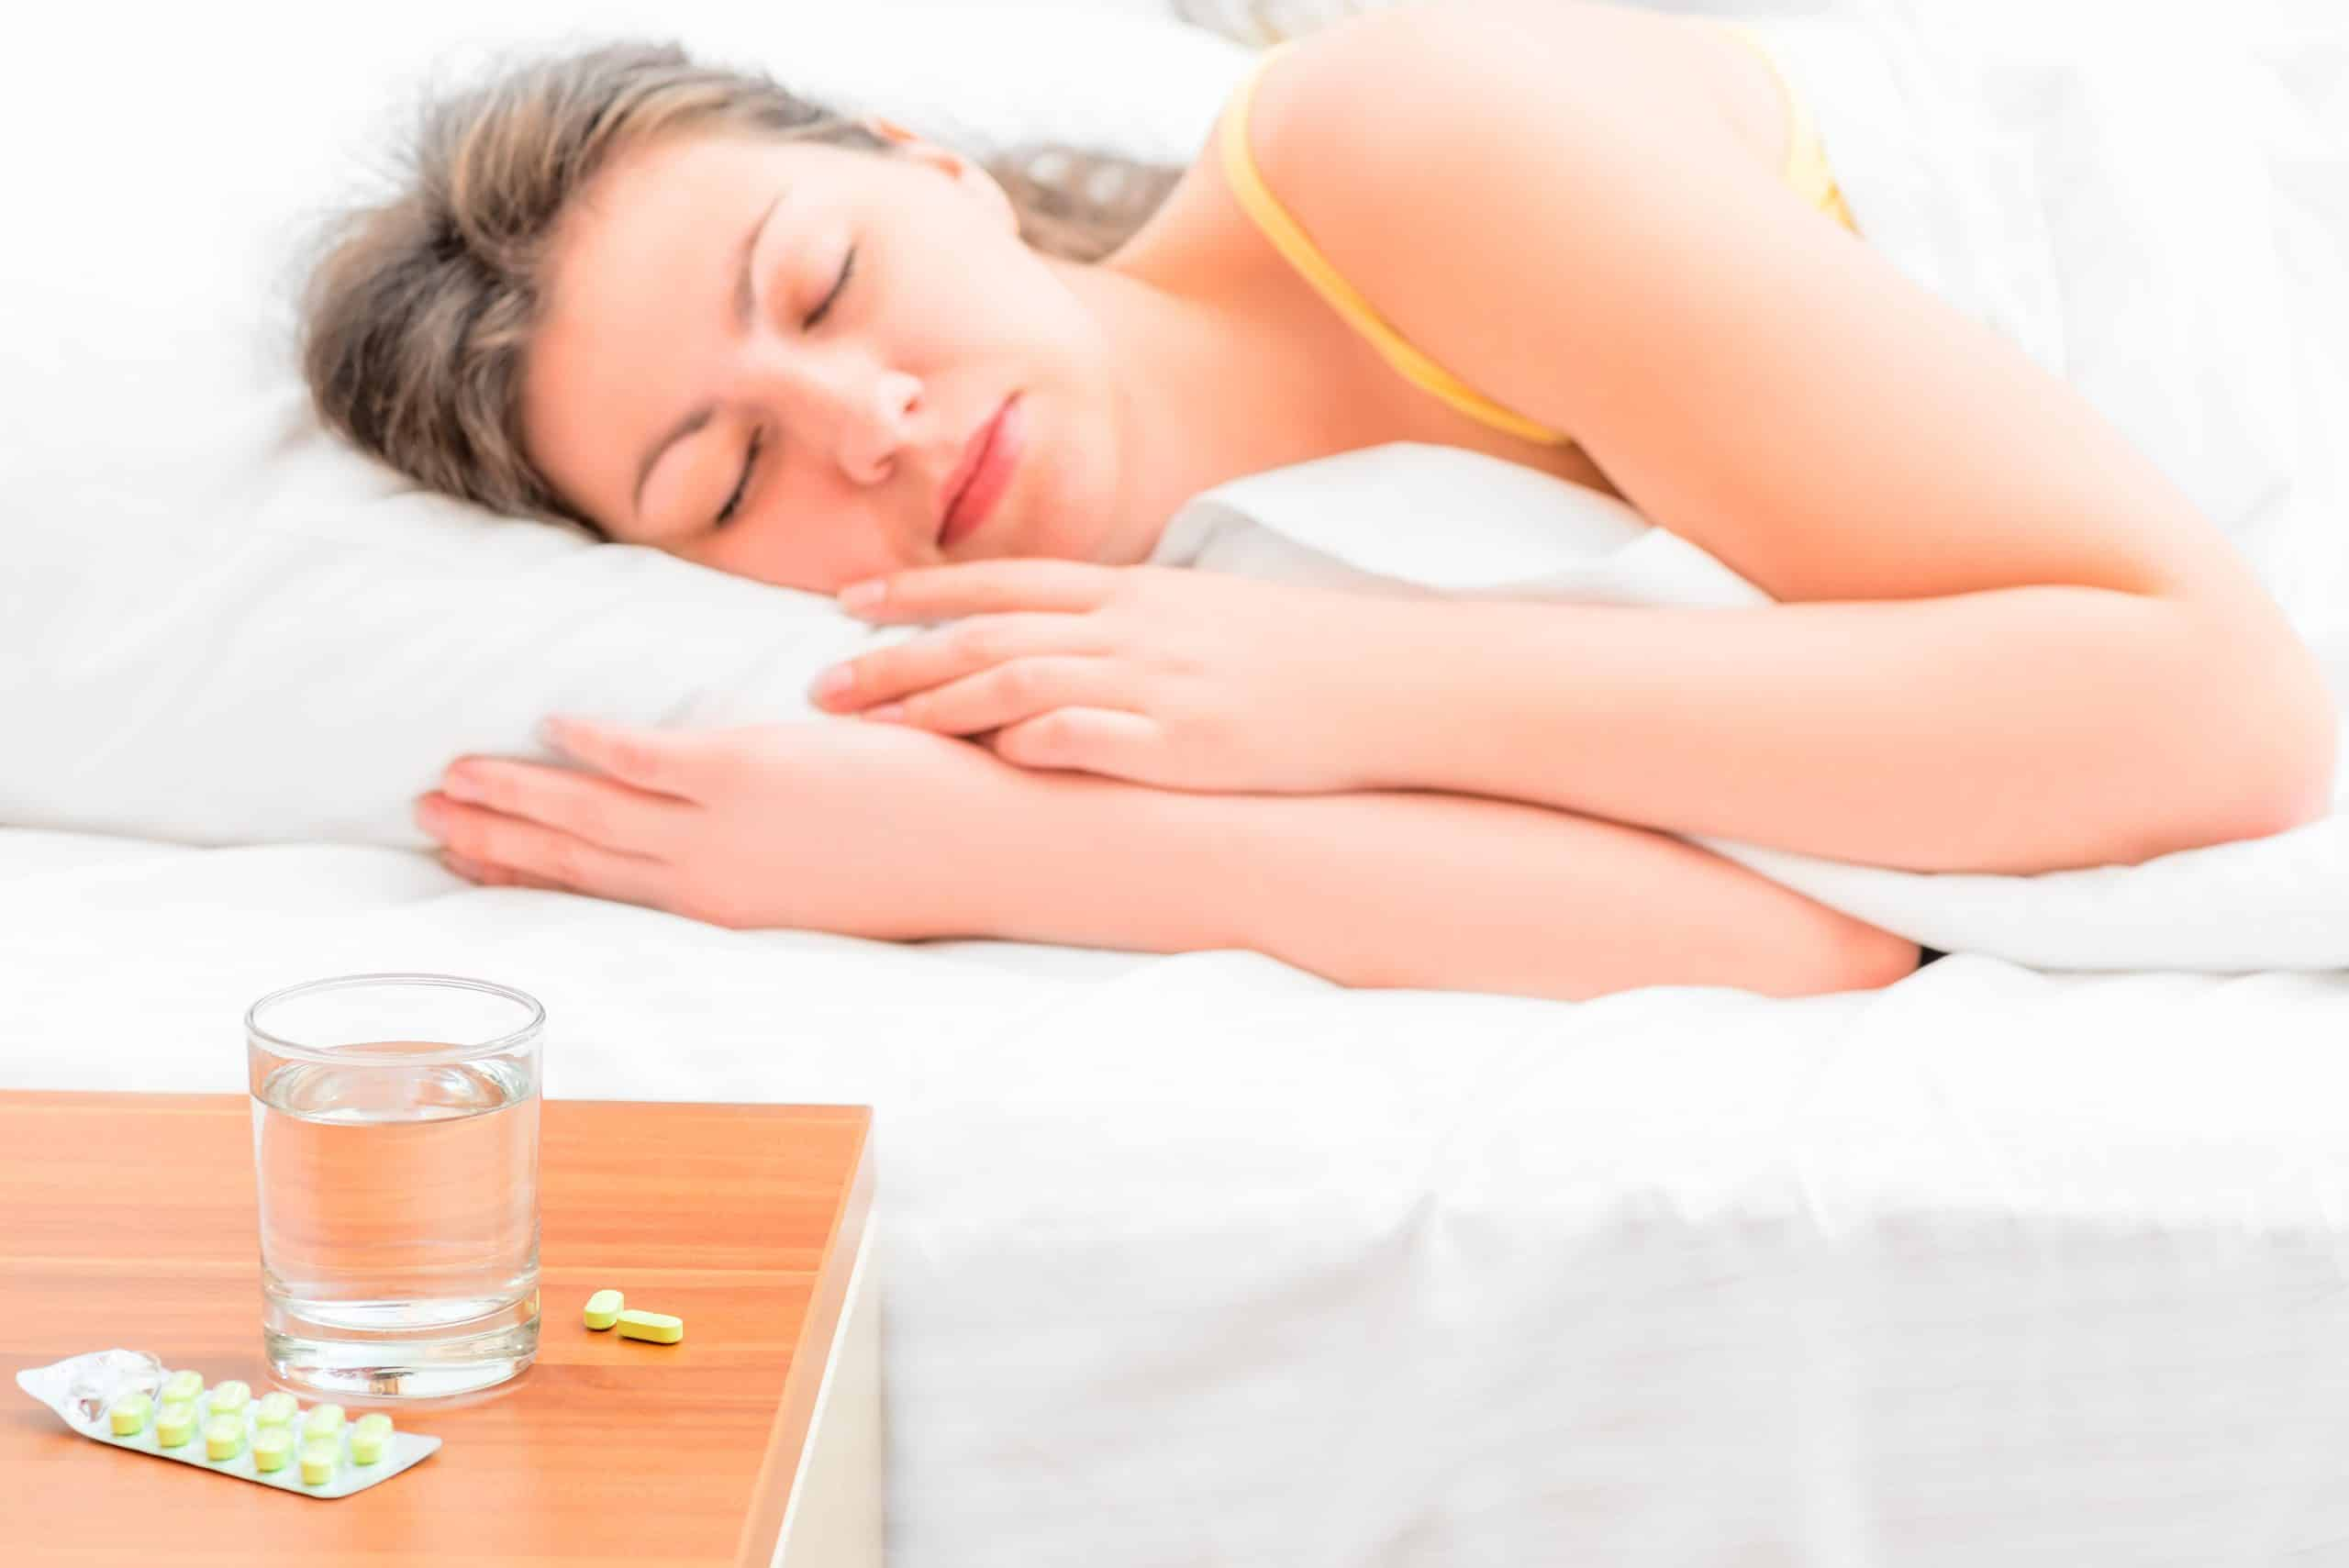 how to sleep comfortably after gallbladder surgery